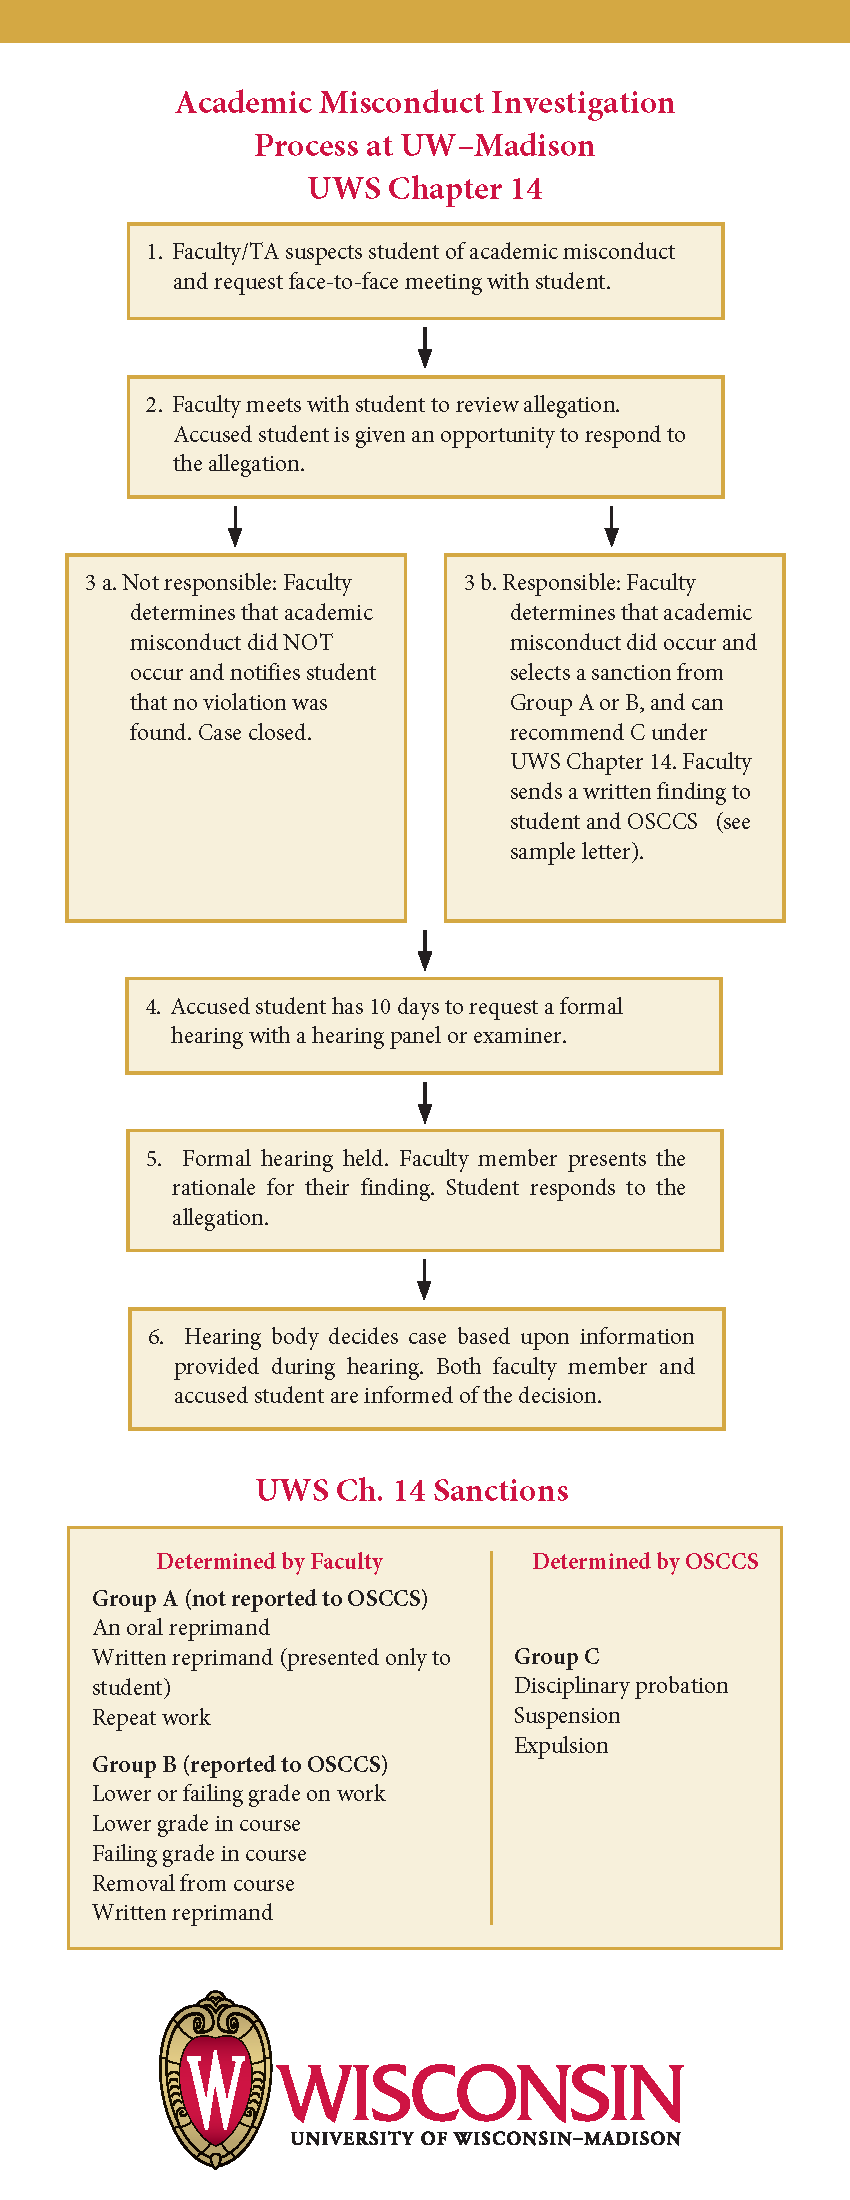 Academic Misconduct Flow Chart Office Of Student Conduct And Process Diagram Restaurant Download Integrity Flowchart